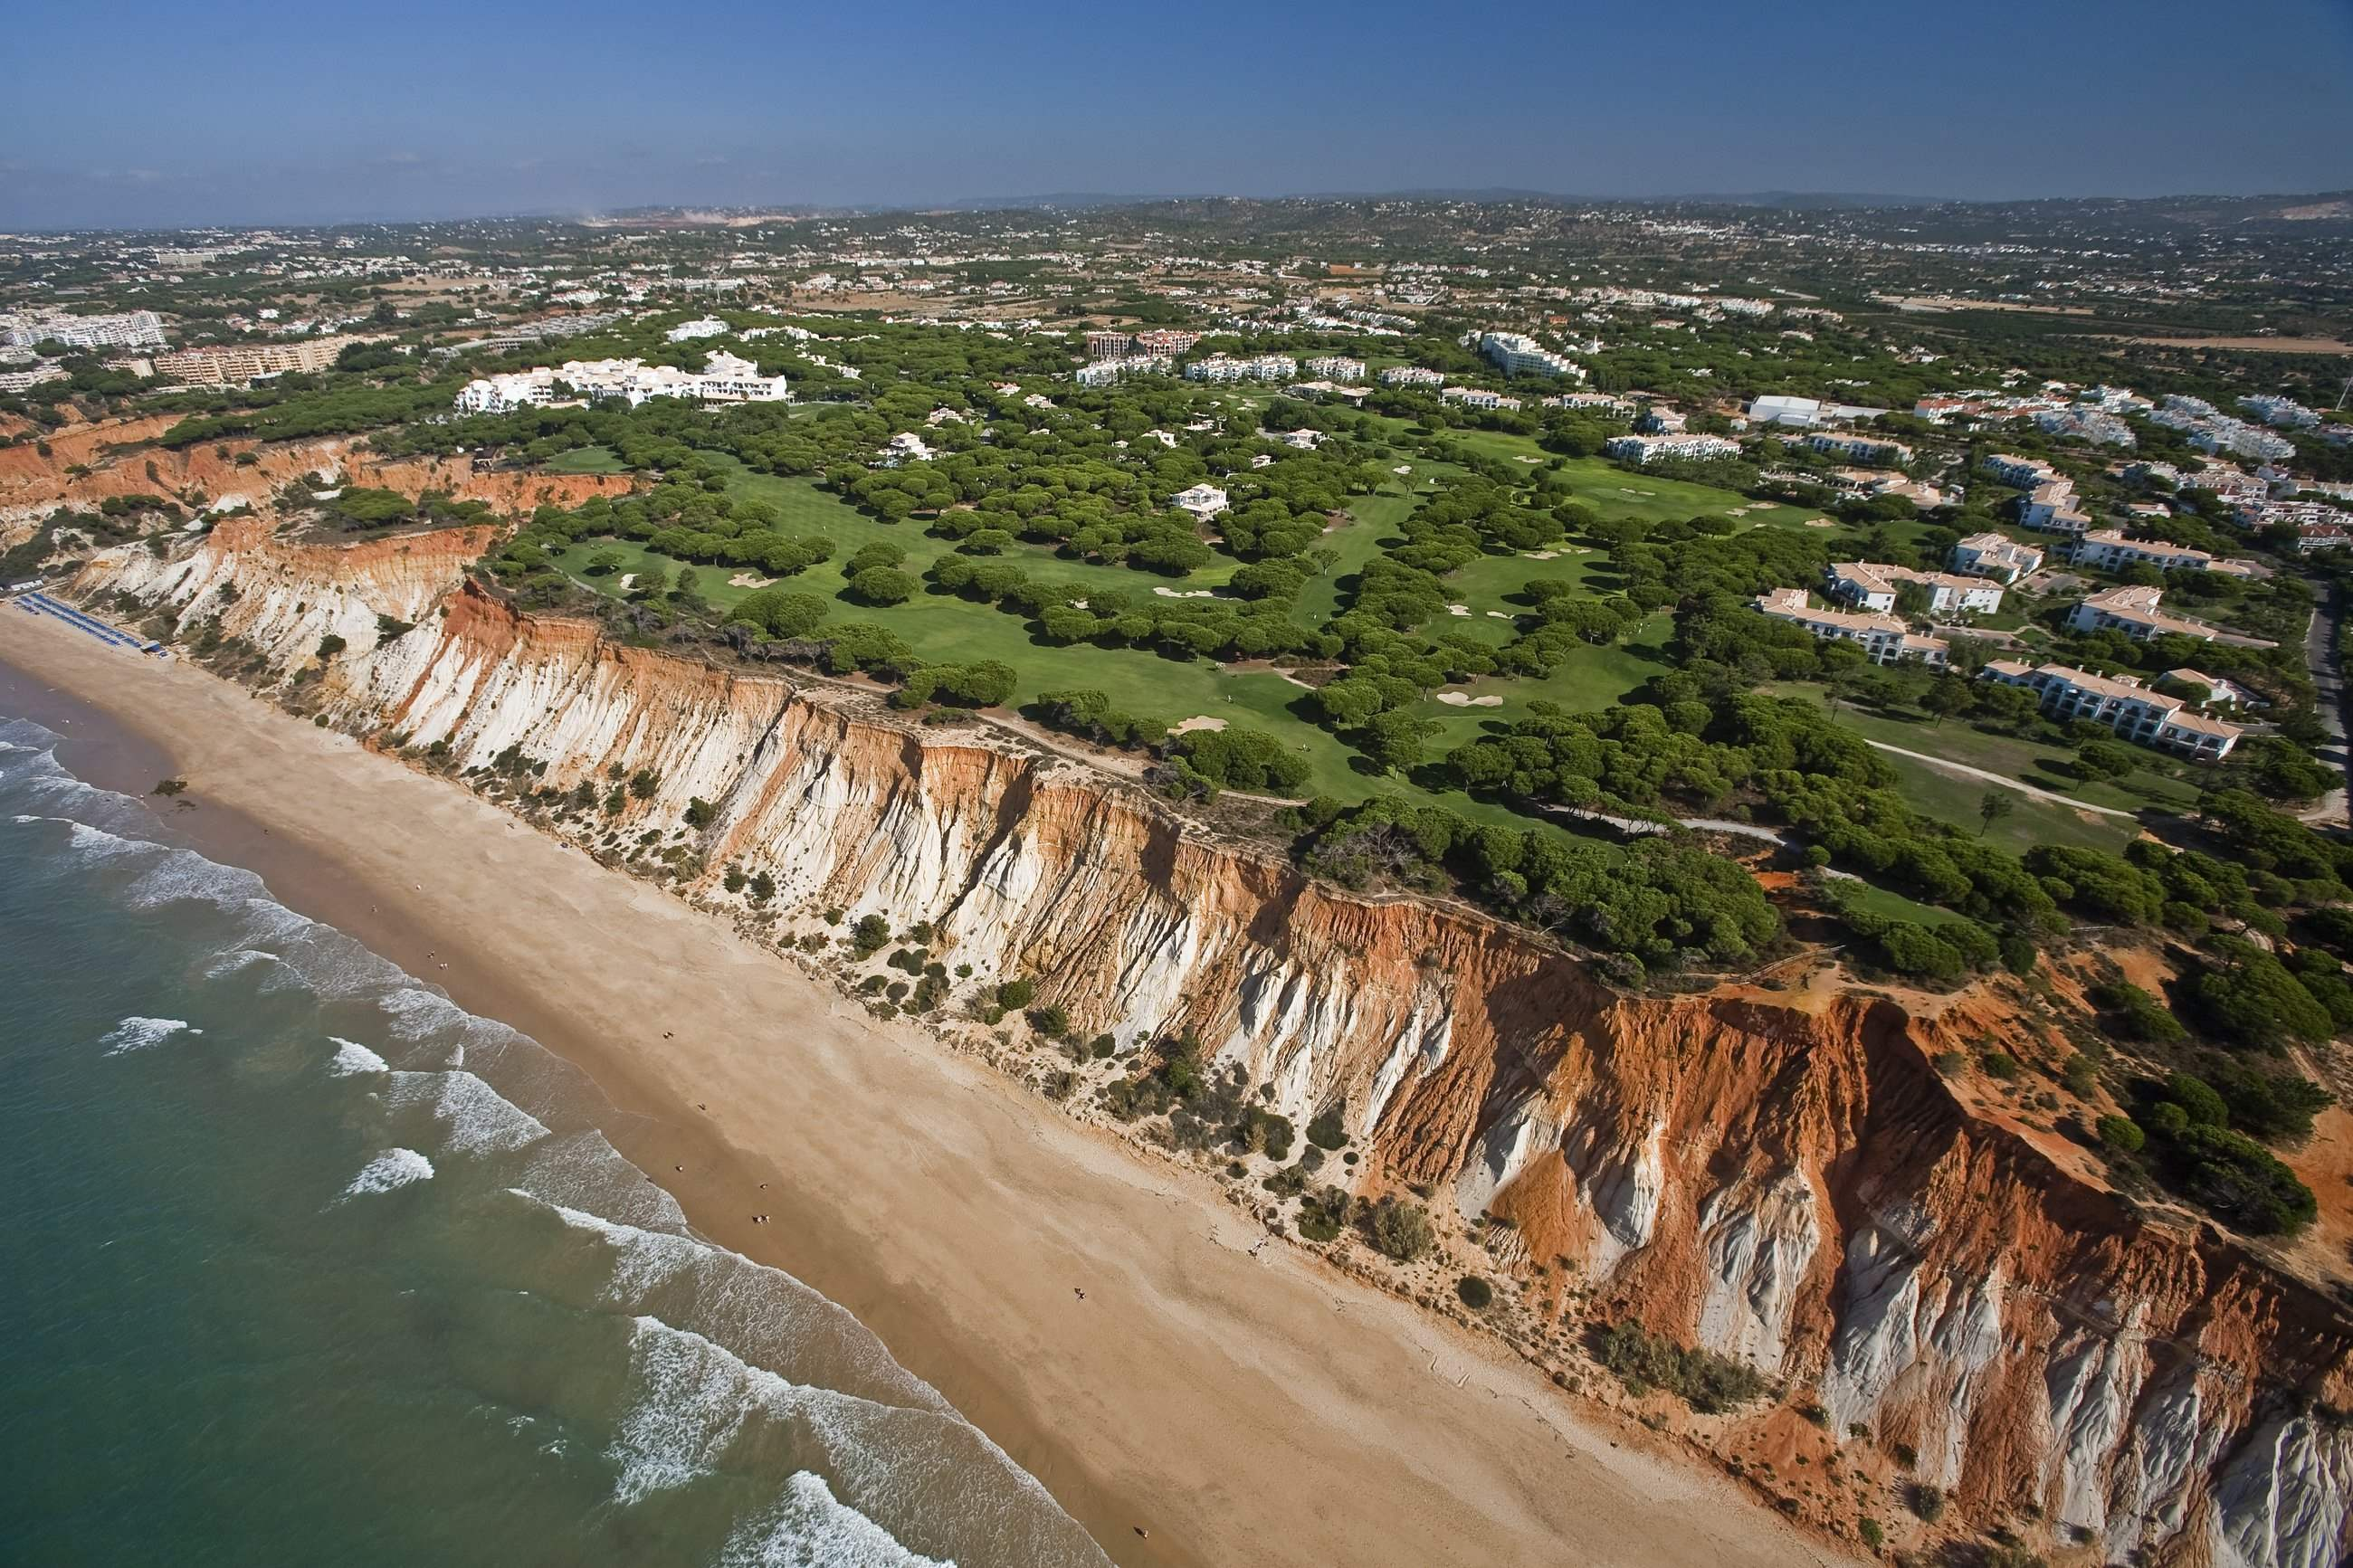 Pine Cliffs Villa Falesia, 4 bedroom rate, main house, 4 bedroom villa in Pine Cliffs Resort, Algarve Photo #24